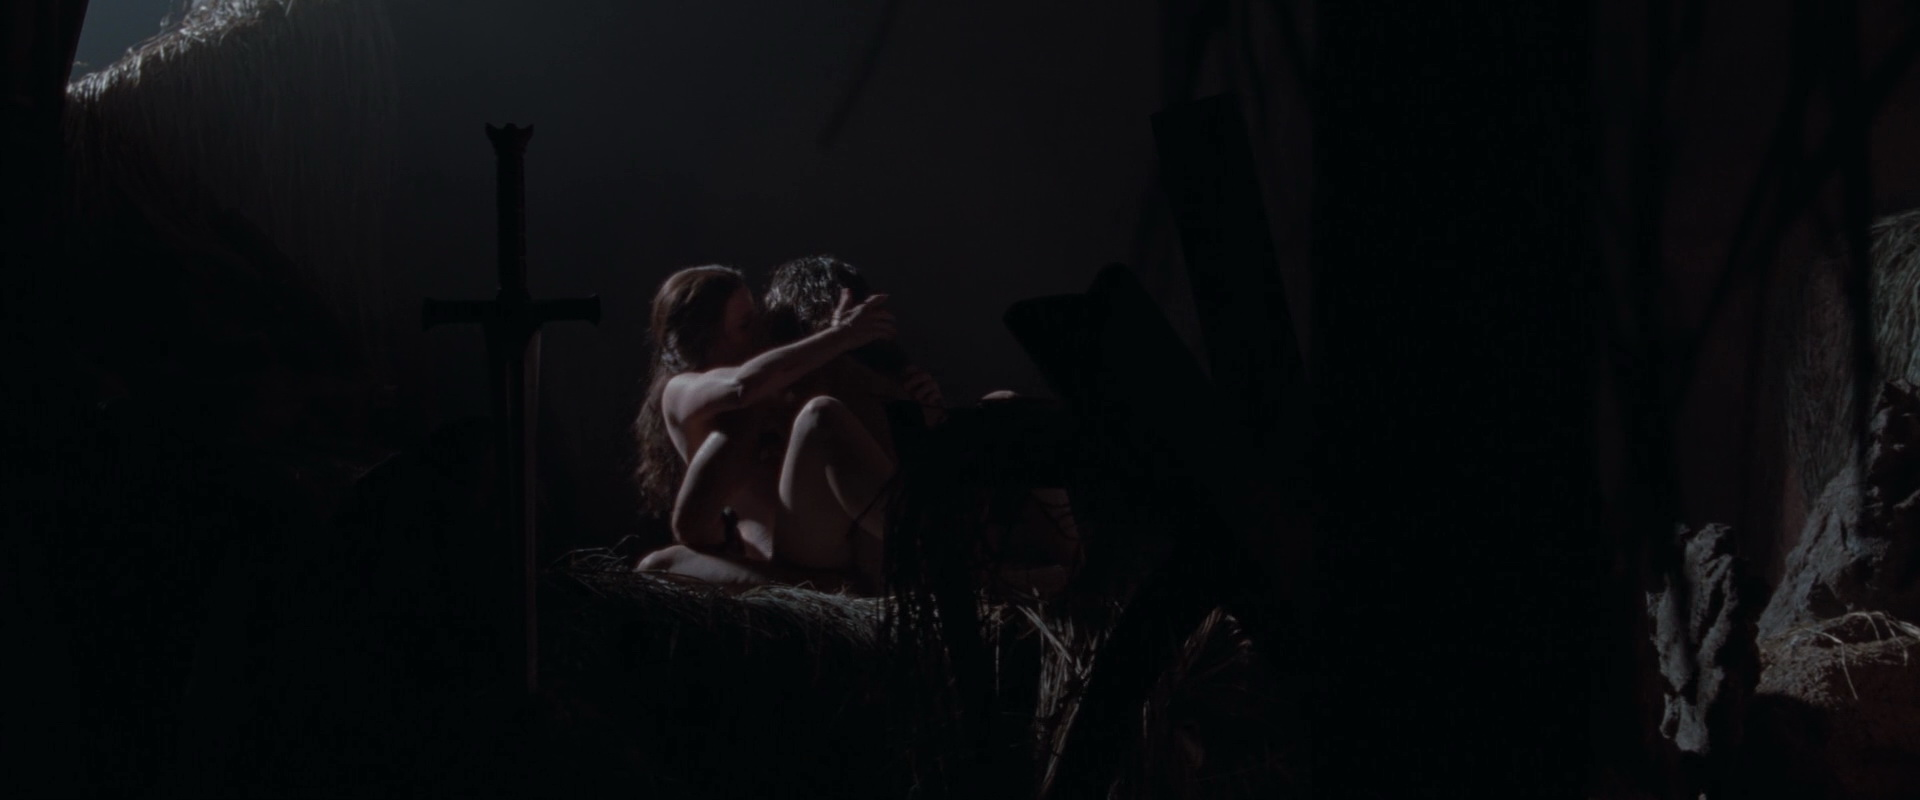 Naked images from conan the barbarian something is